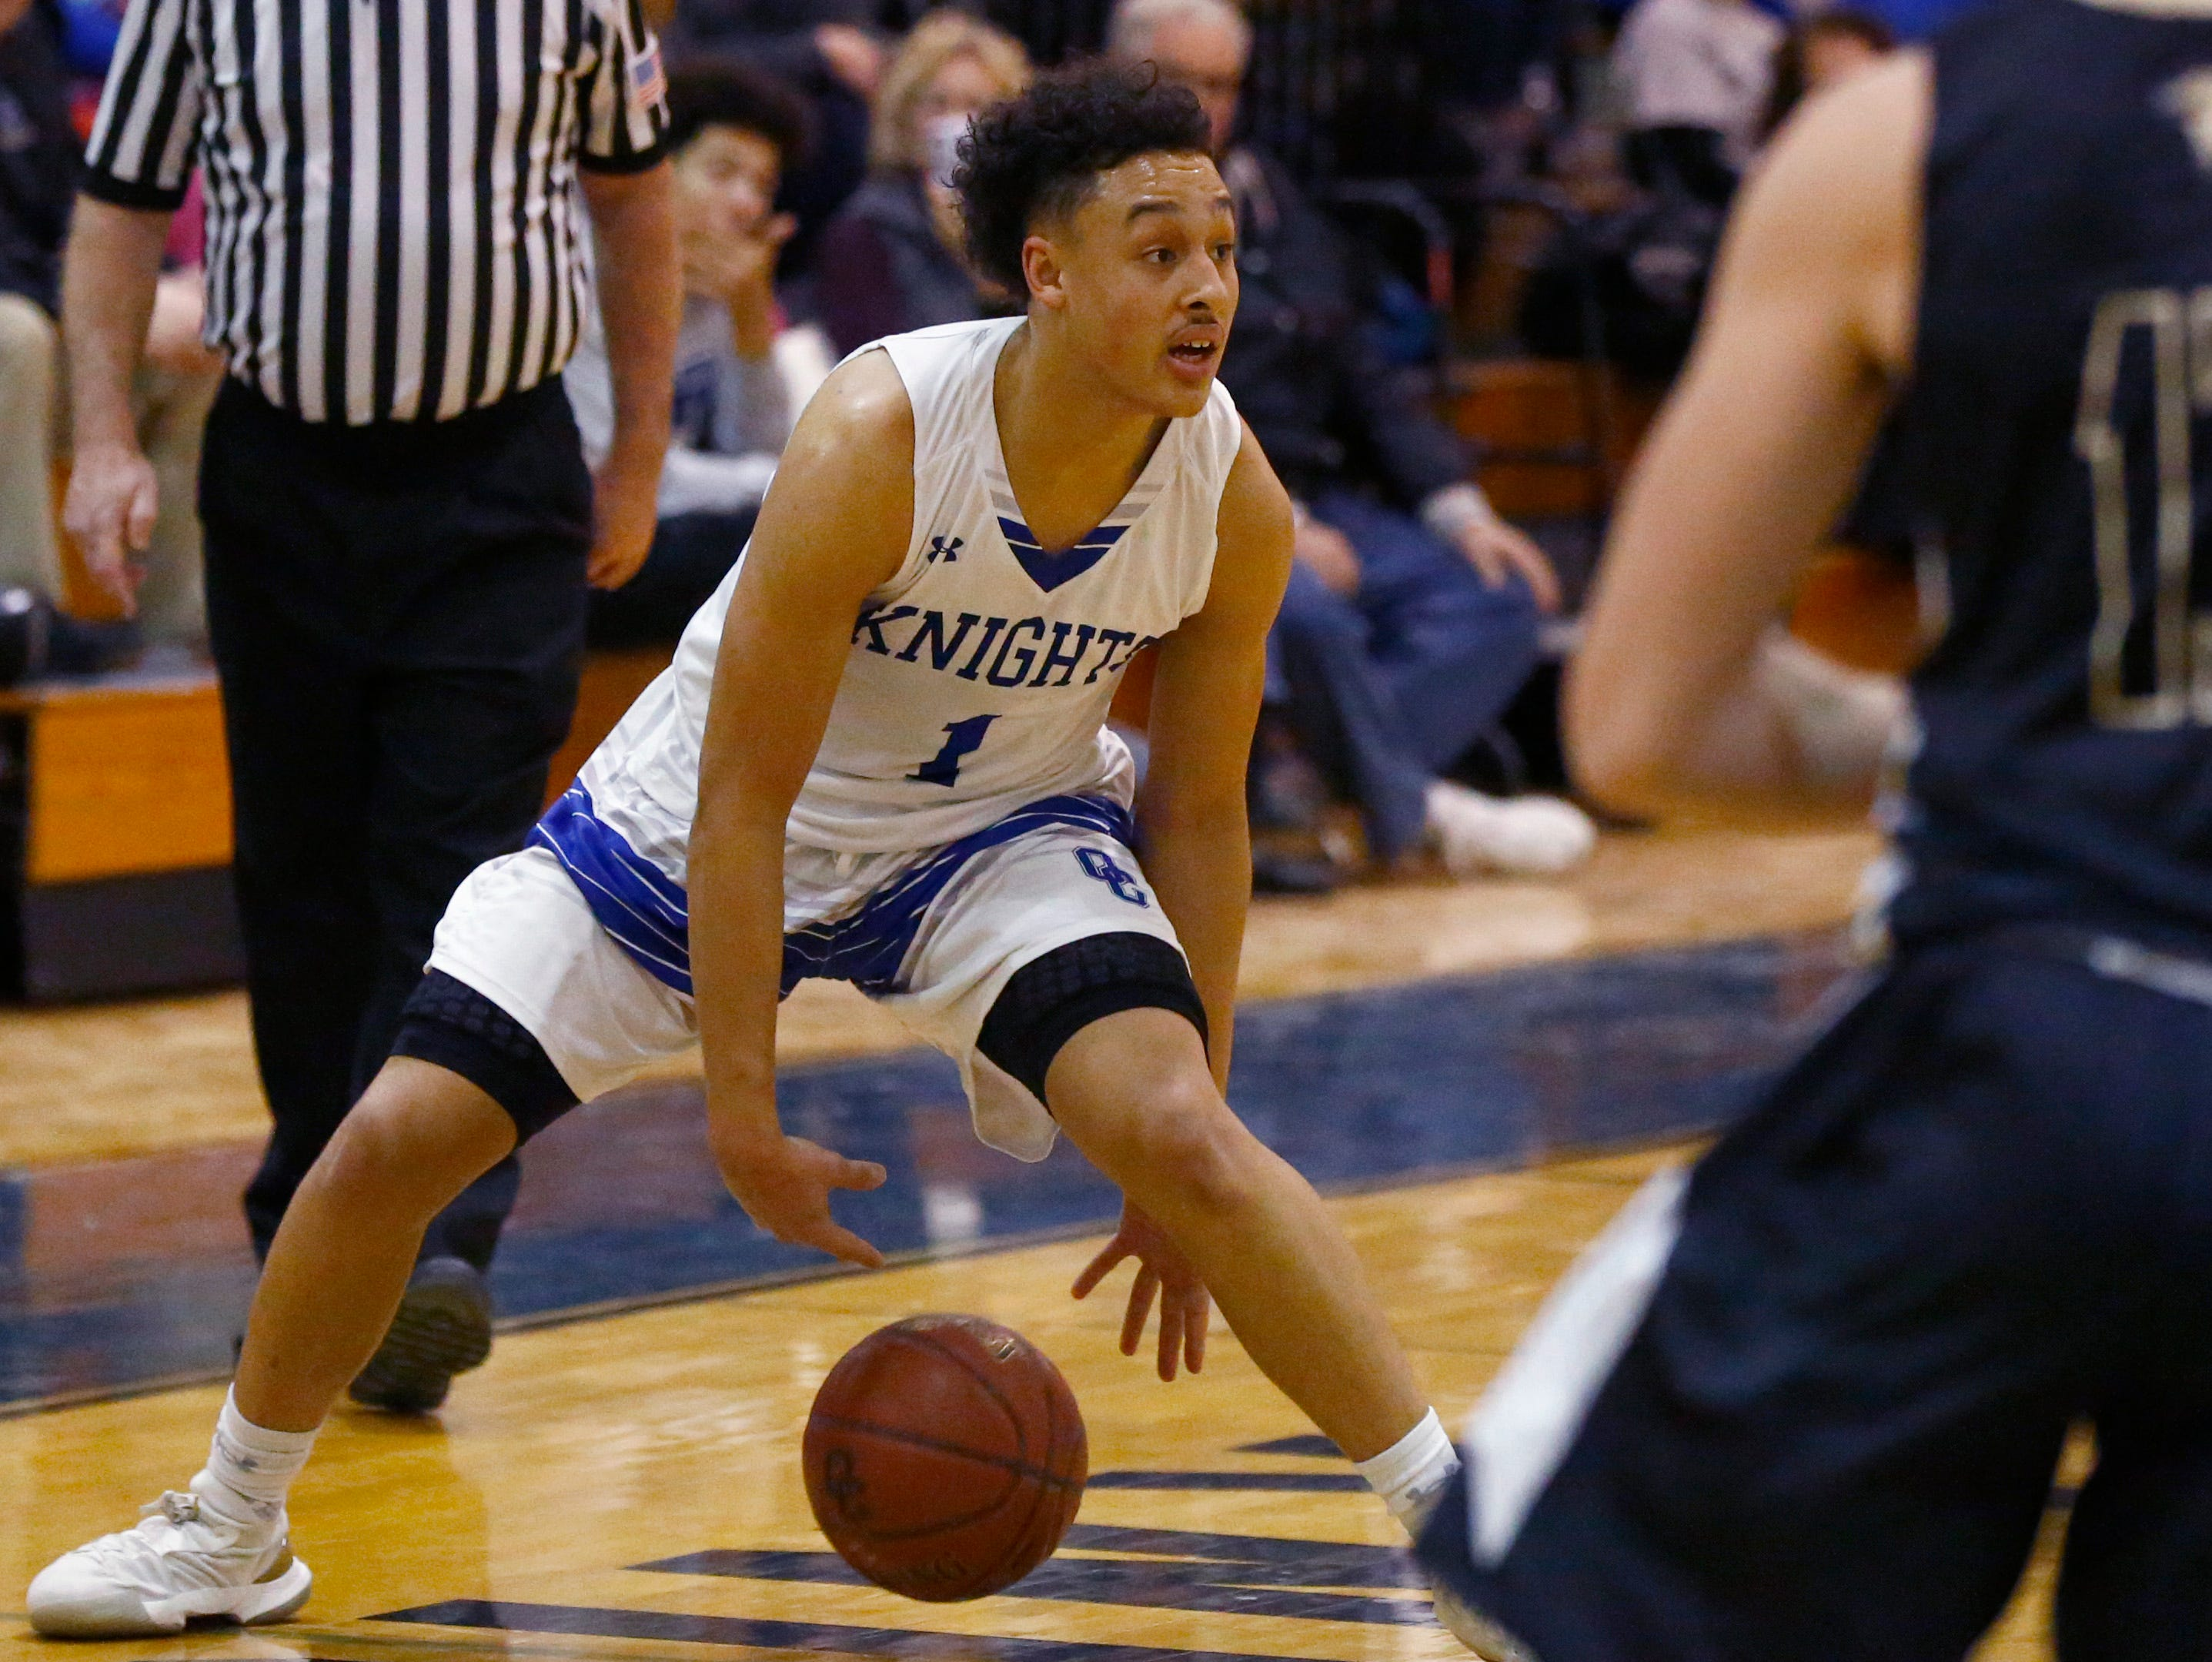 Oak Creek's Quinn Stulo eyes down his opponent in the Knights' game against Franklin on Jan. 25.